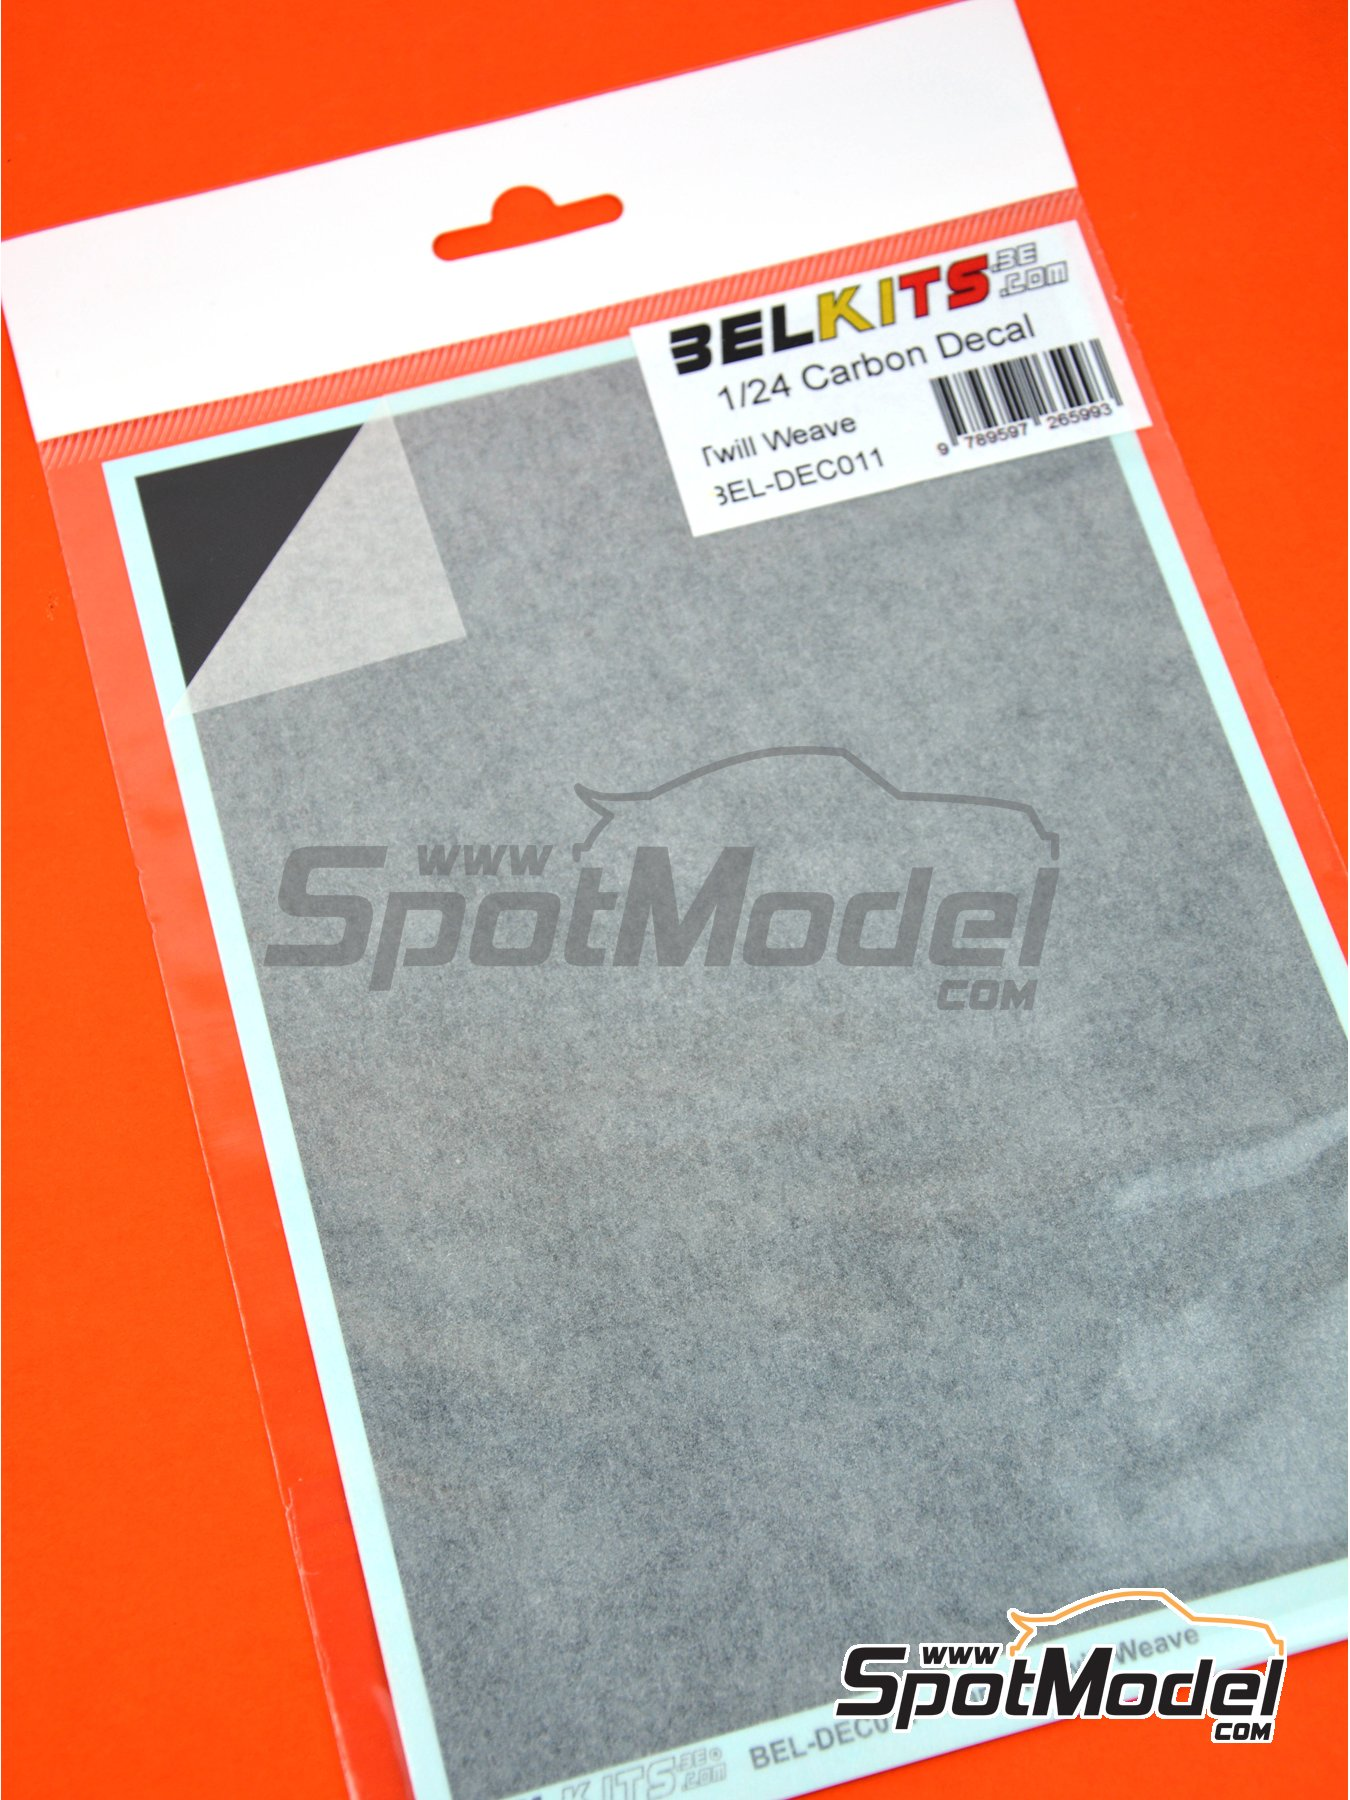 Carbon Twill Weave | Decals manufactured by Belkits (ref. BEL-DEC011) image